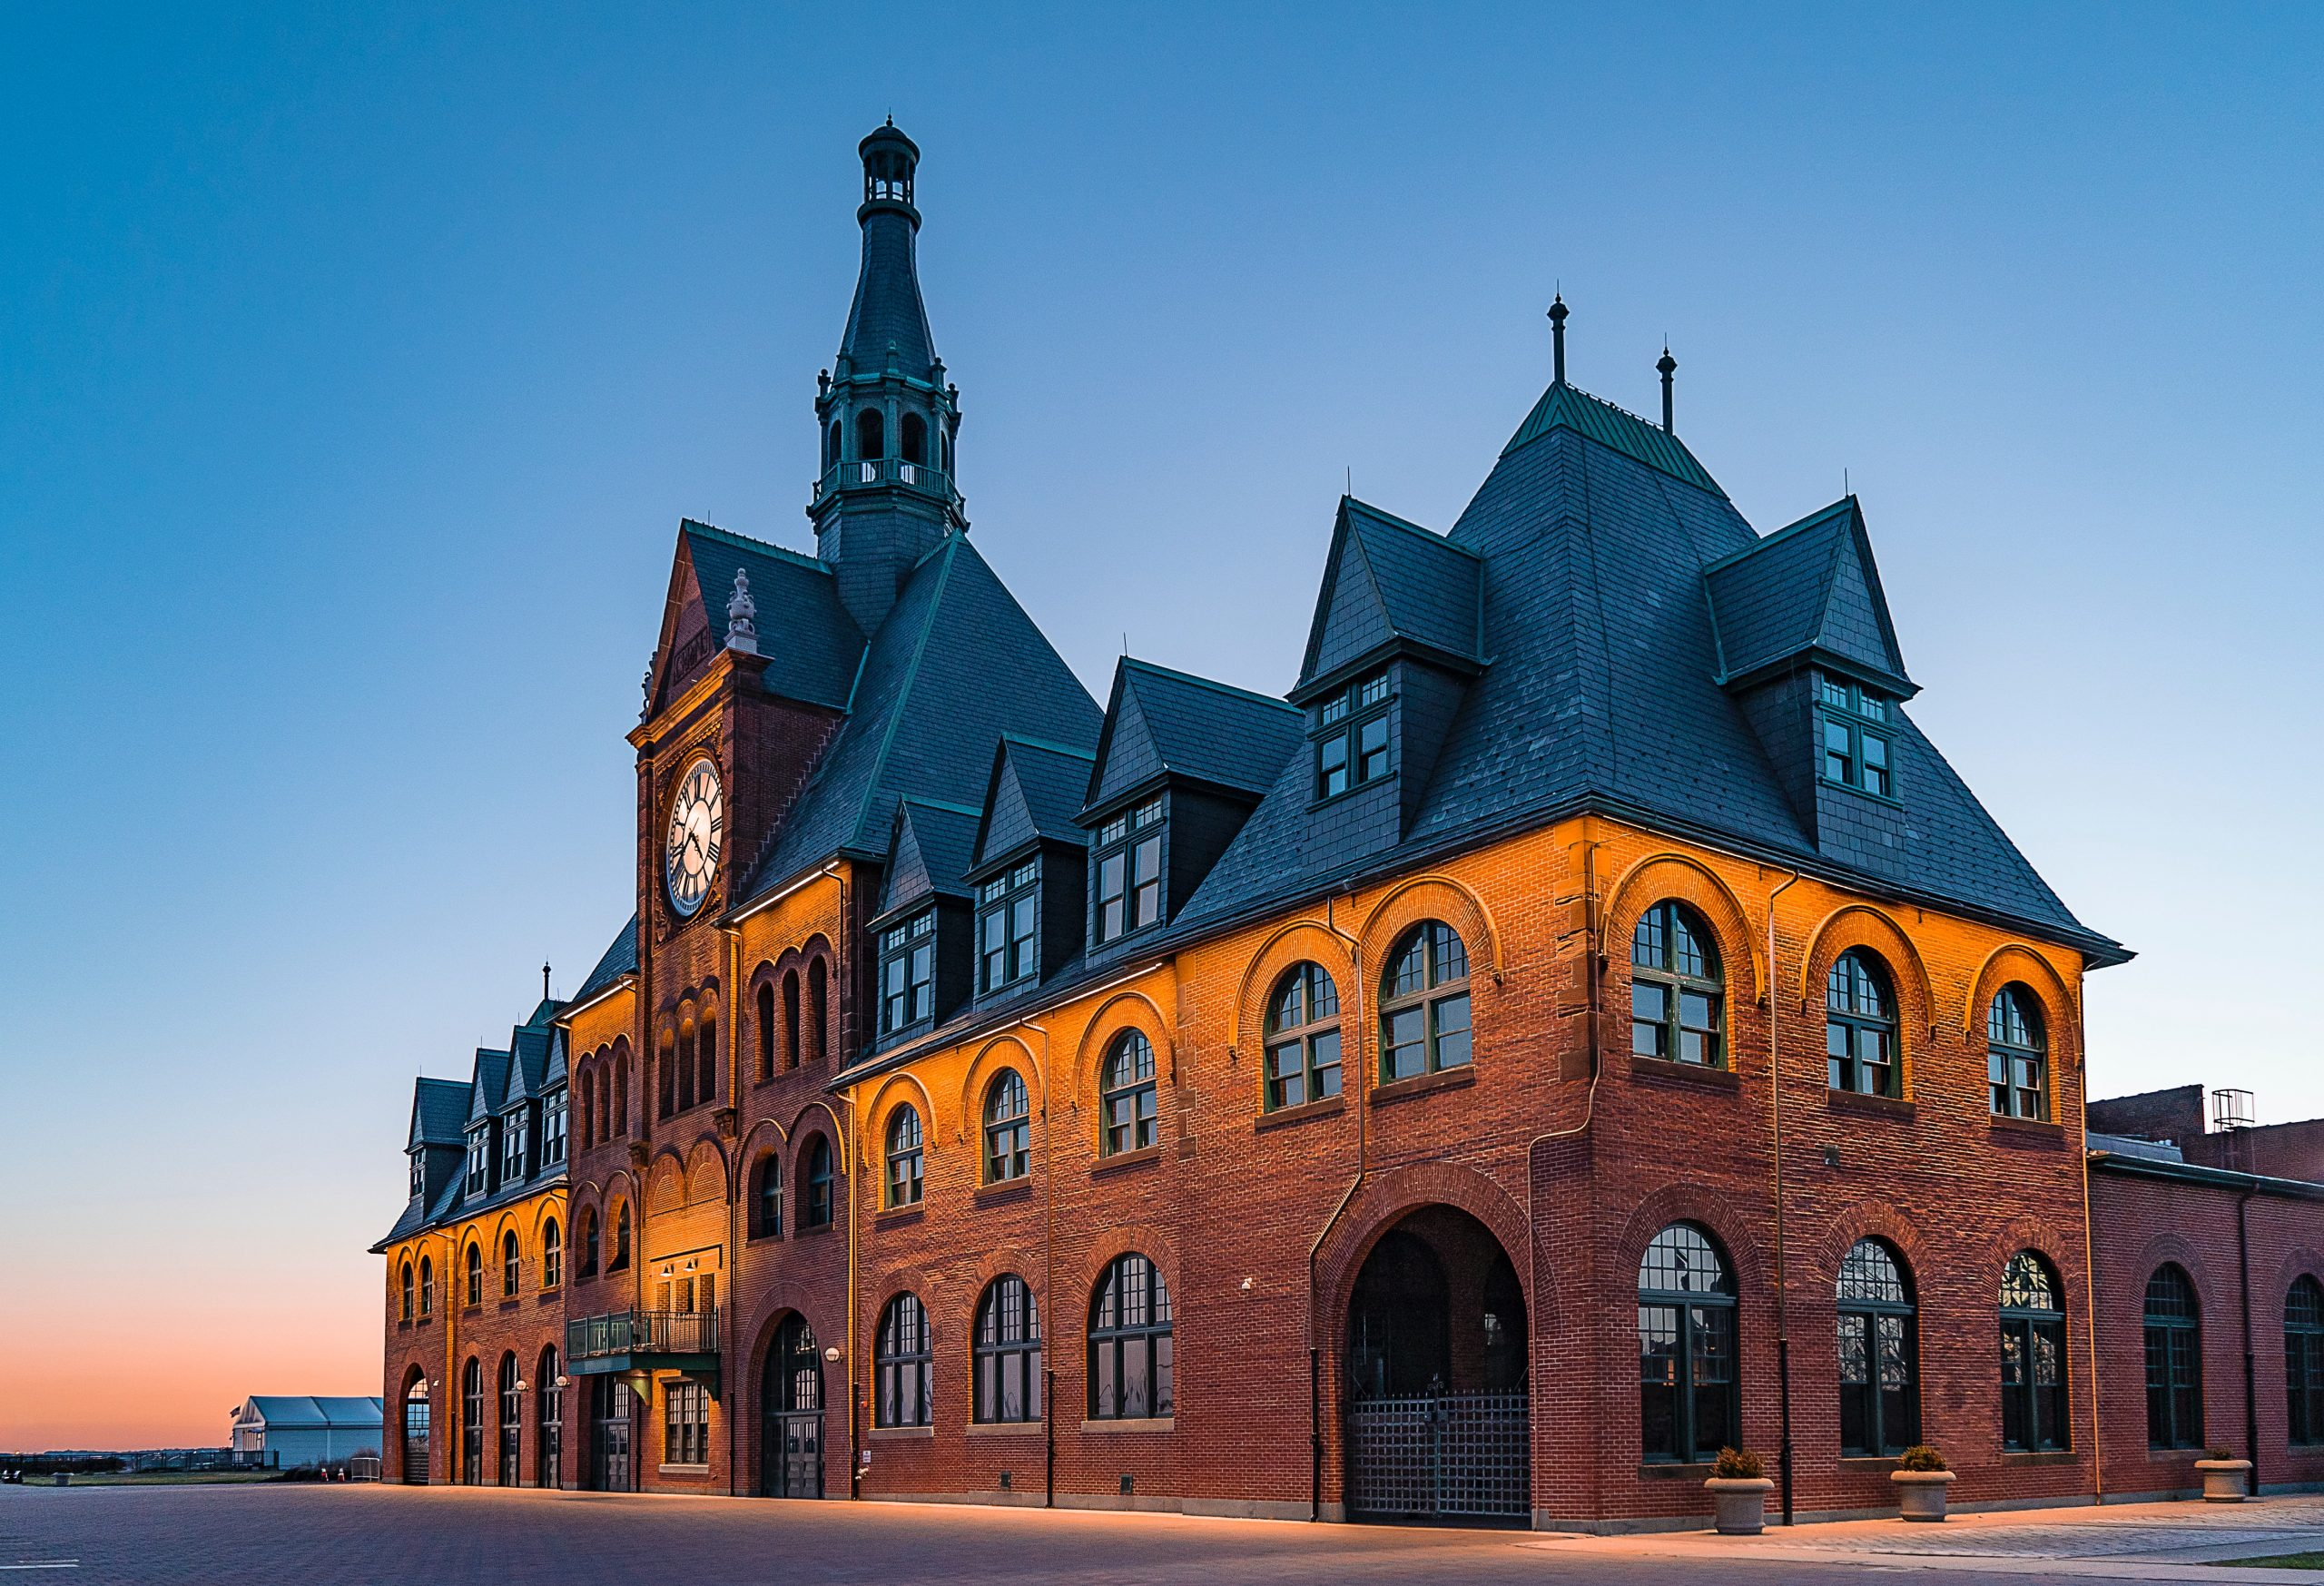 NJ railroad terminal in Jersey City on ACECNJ-American-Council-of-Engineering-Companies-Scholarship-Page